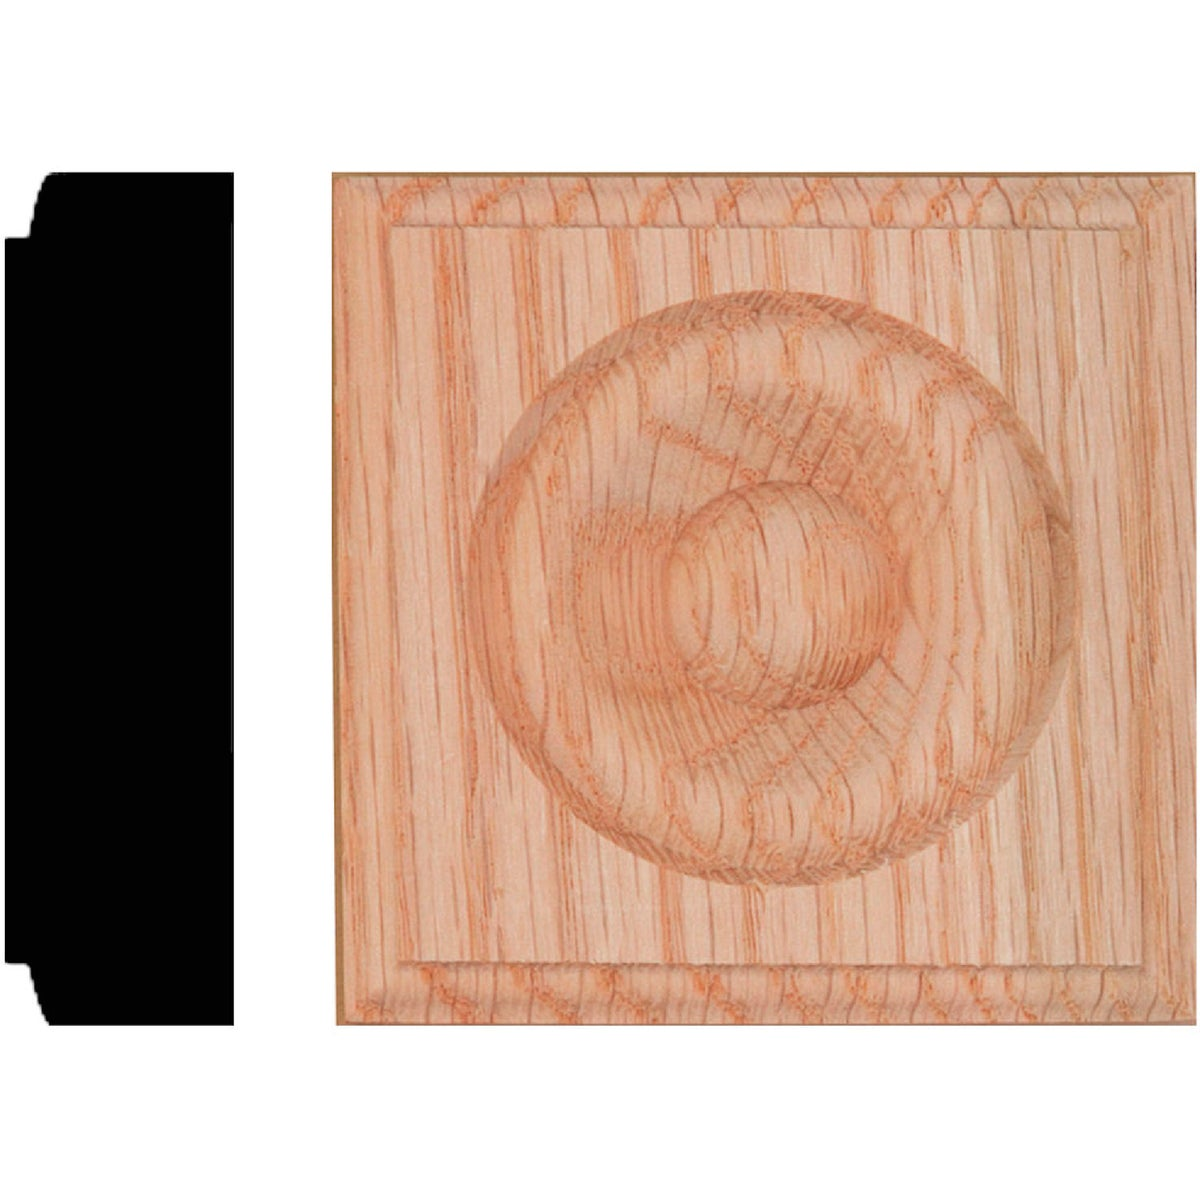 7/8X3-1/4 OAK ROSETTE - R50 by House Of Fara Inc